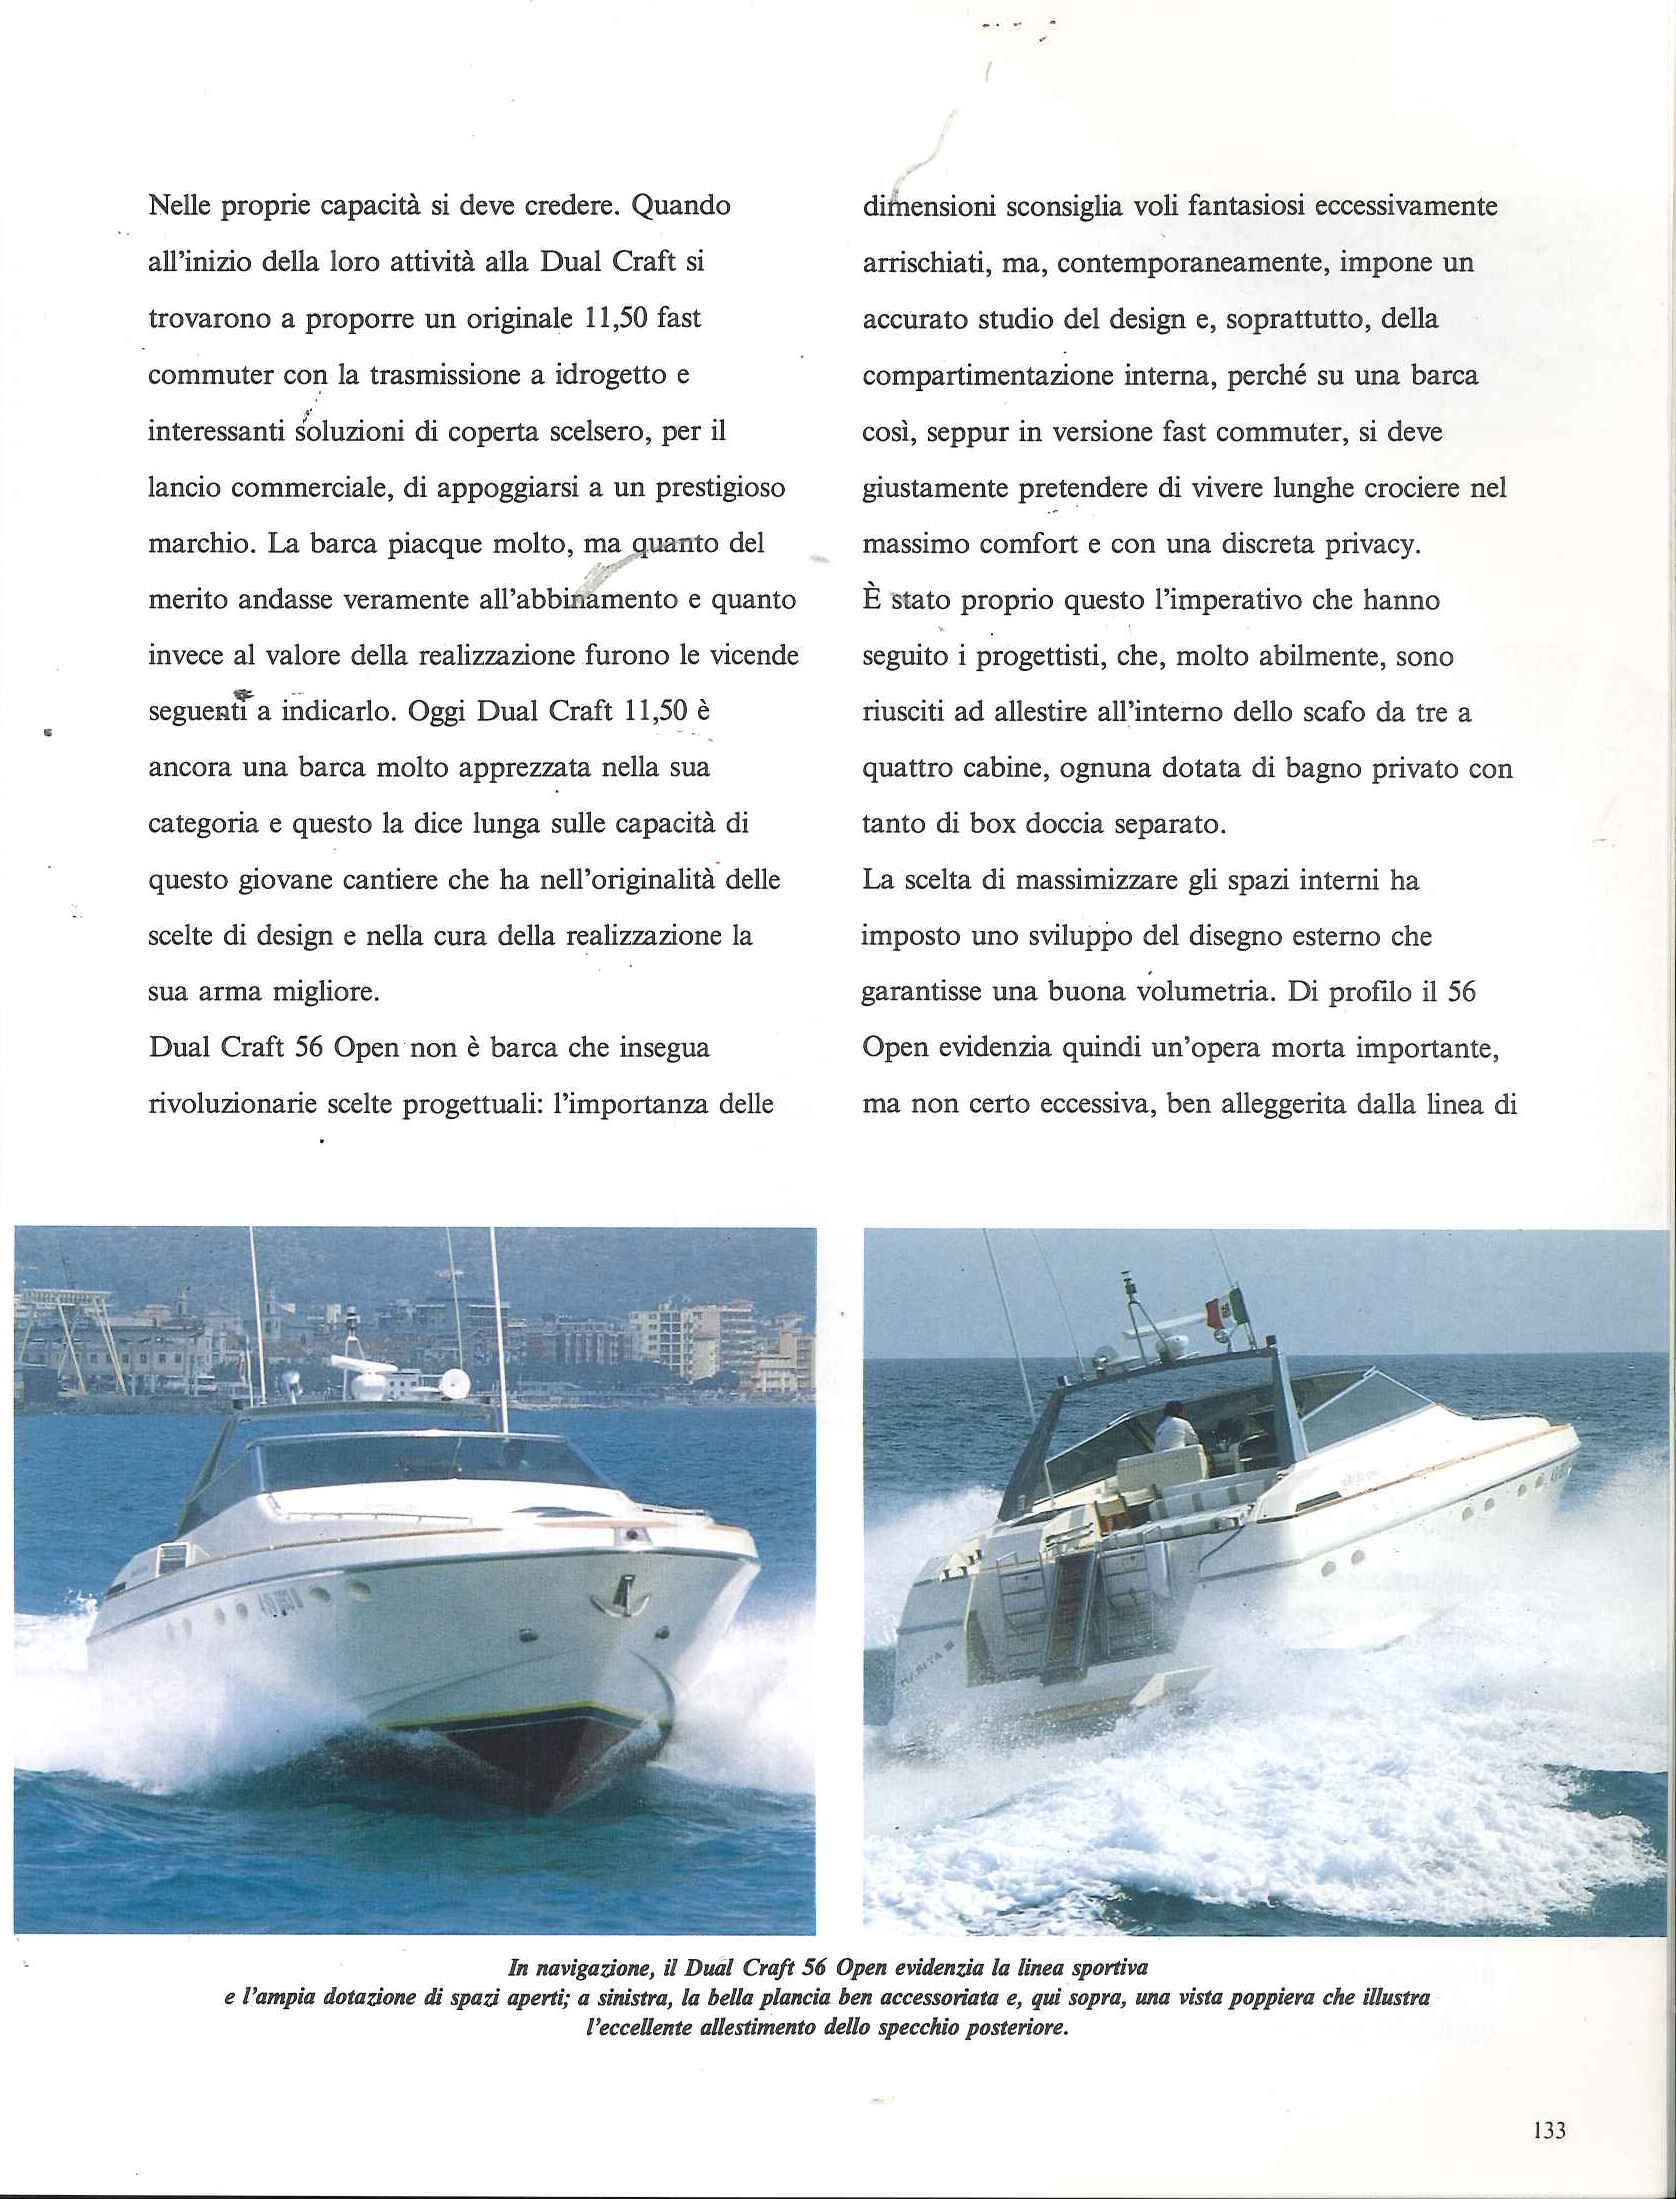 1989 04 PRESS DUAL CRAFT 56 OPEN UOMO MARE 129 (02).jpg